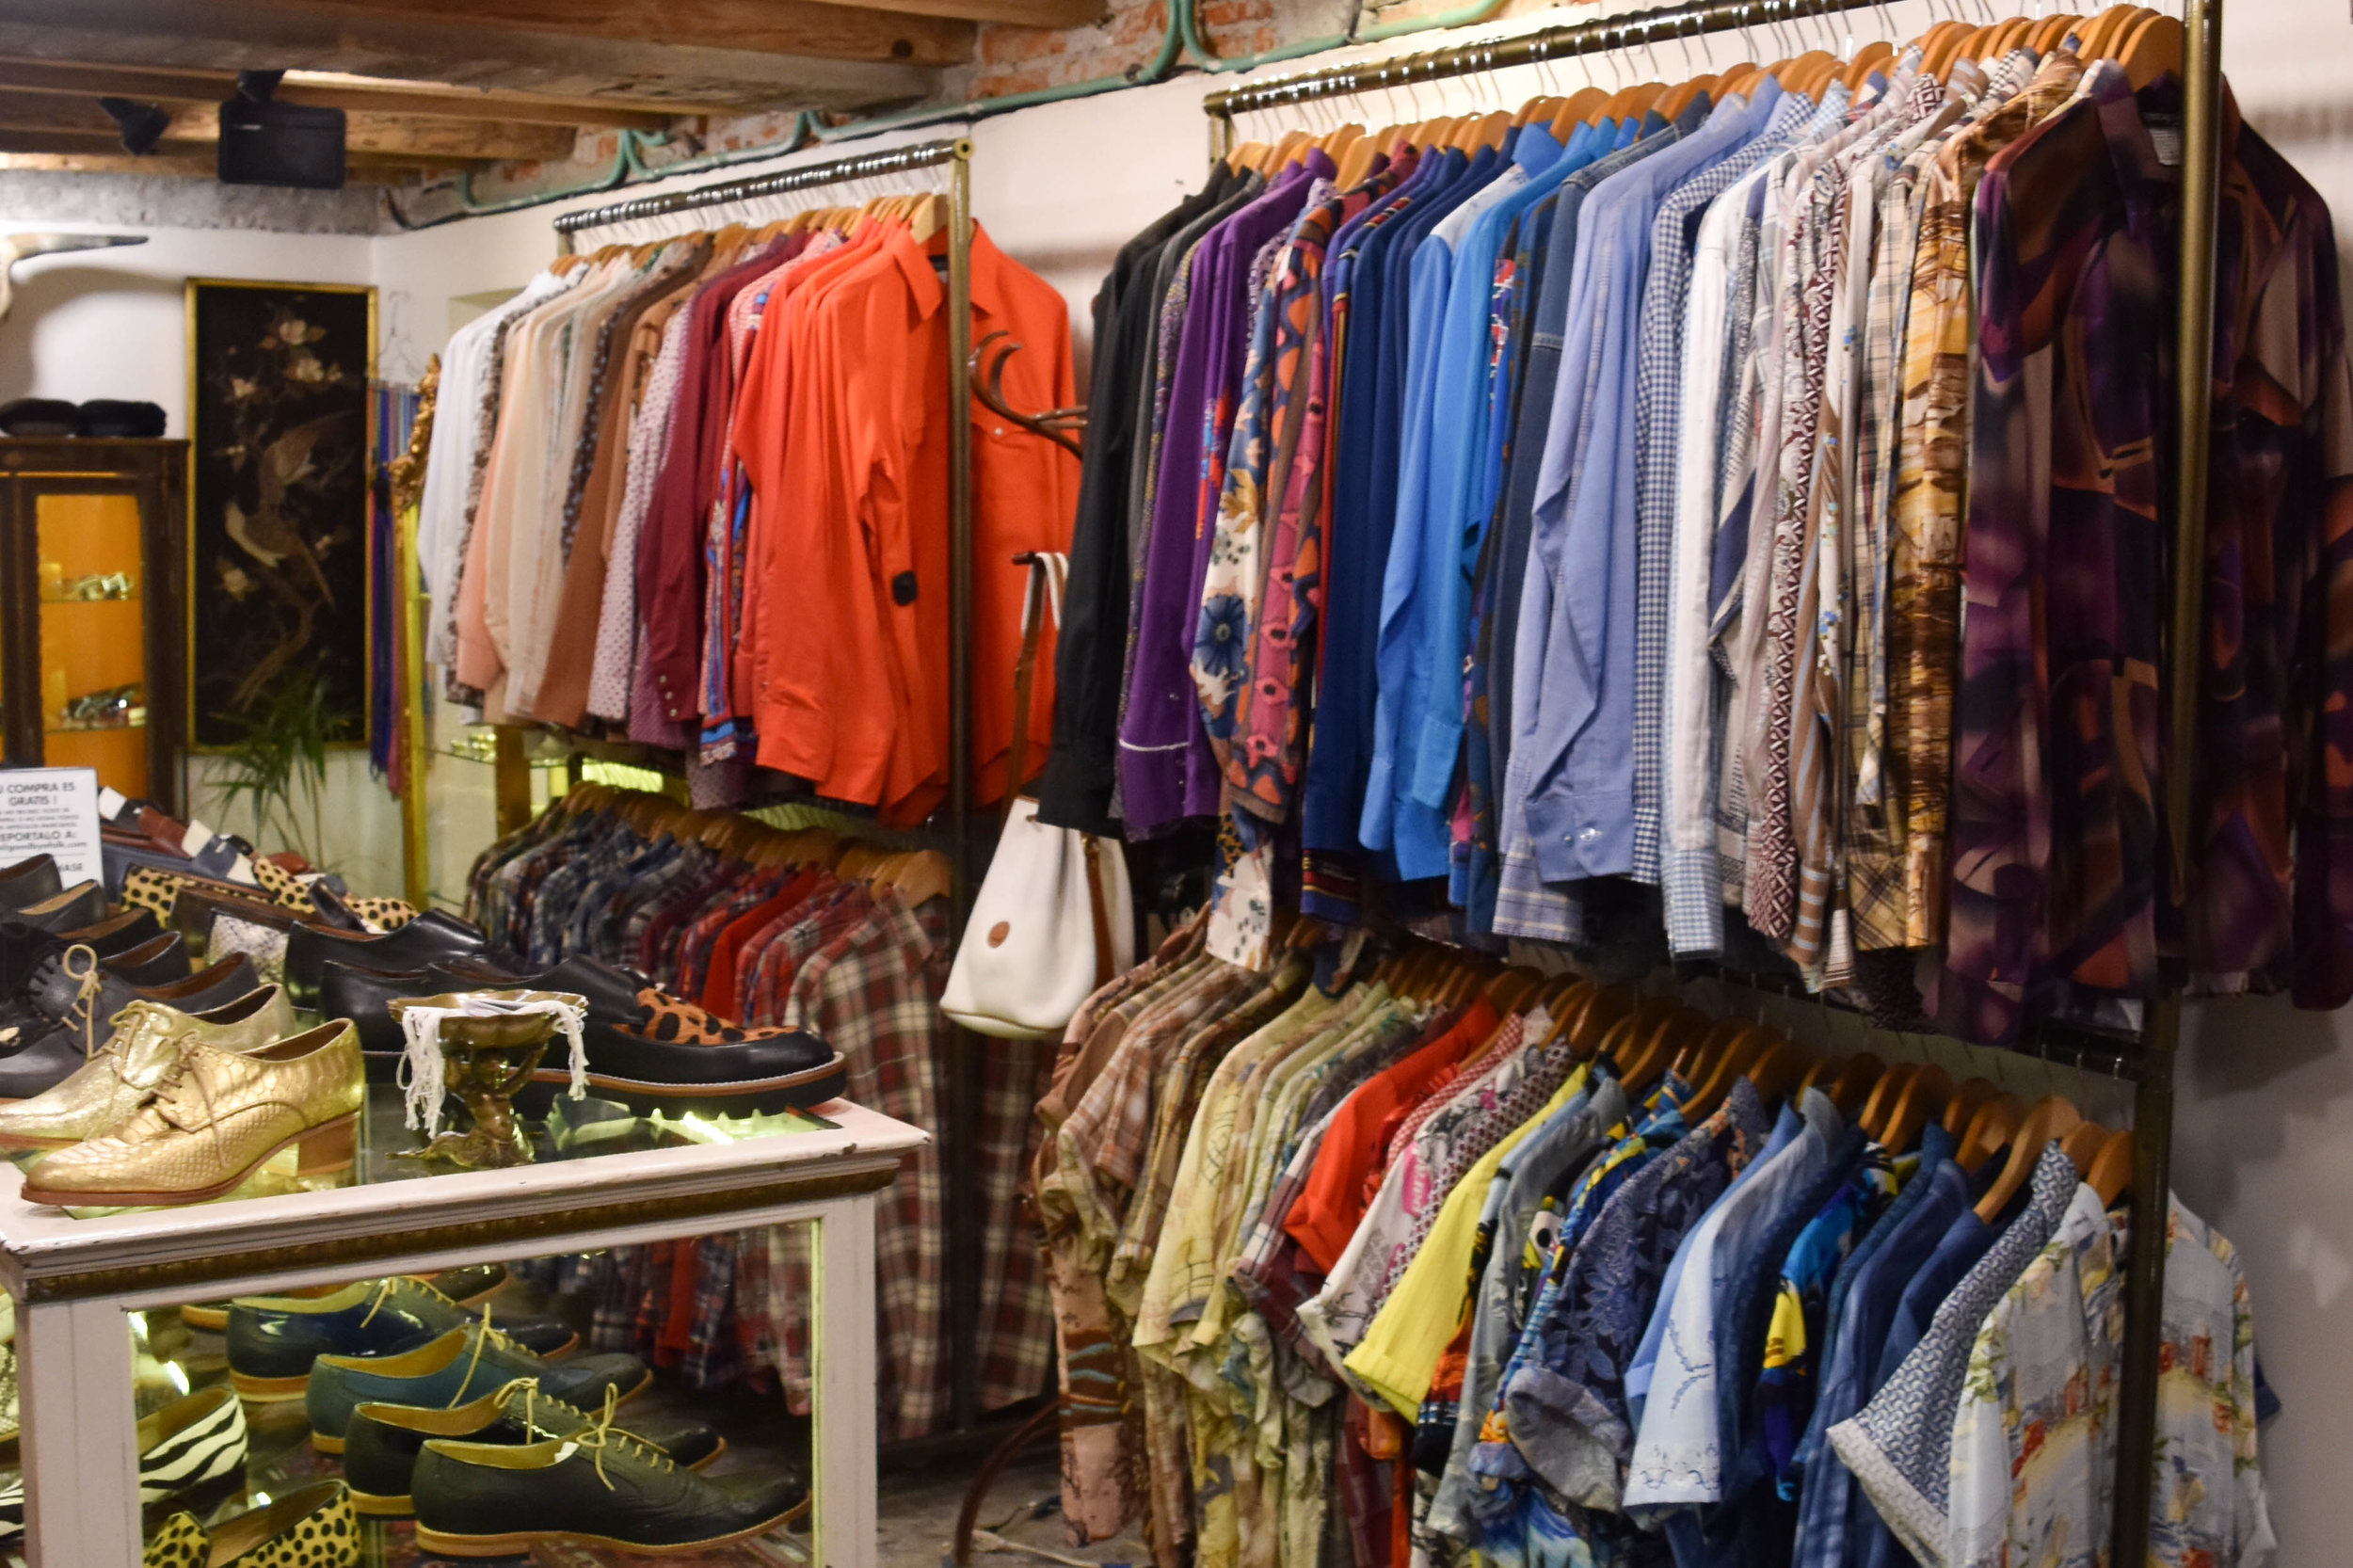 Vintage blouses and shirts and more blouses.